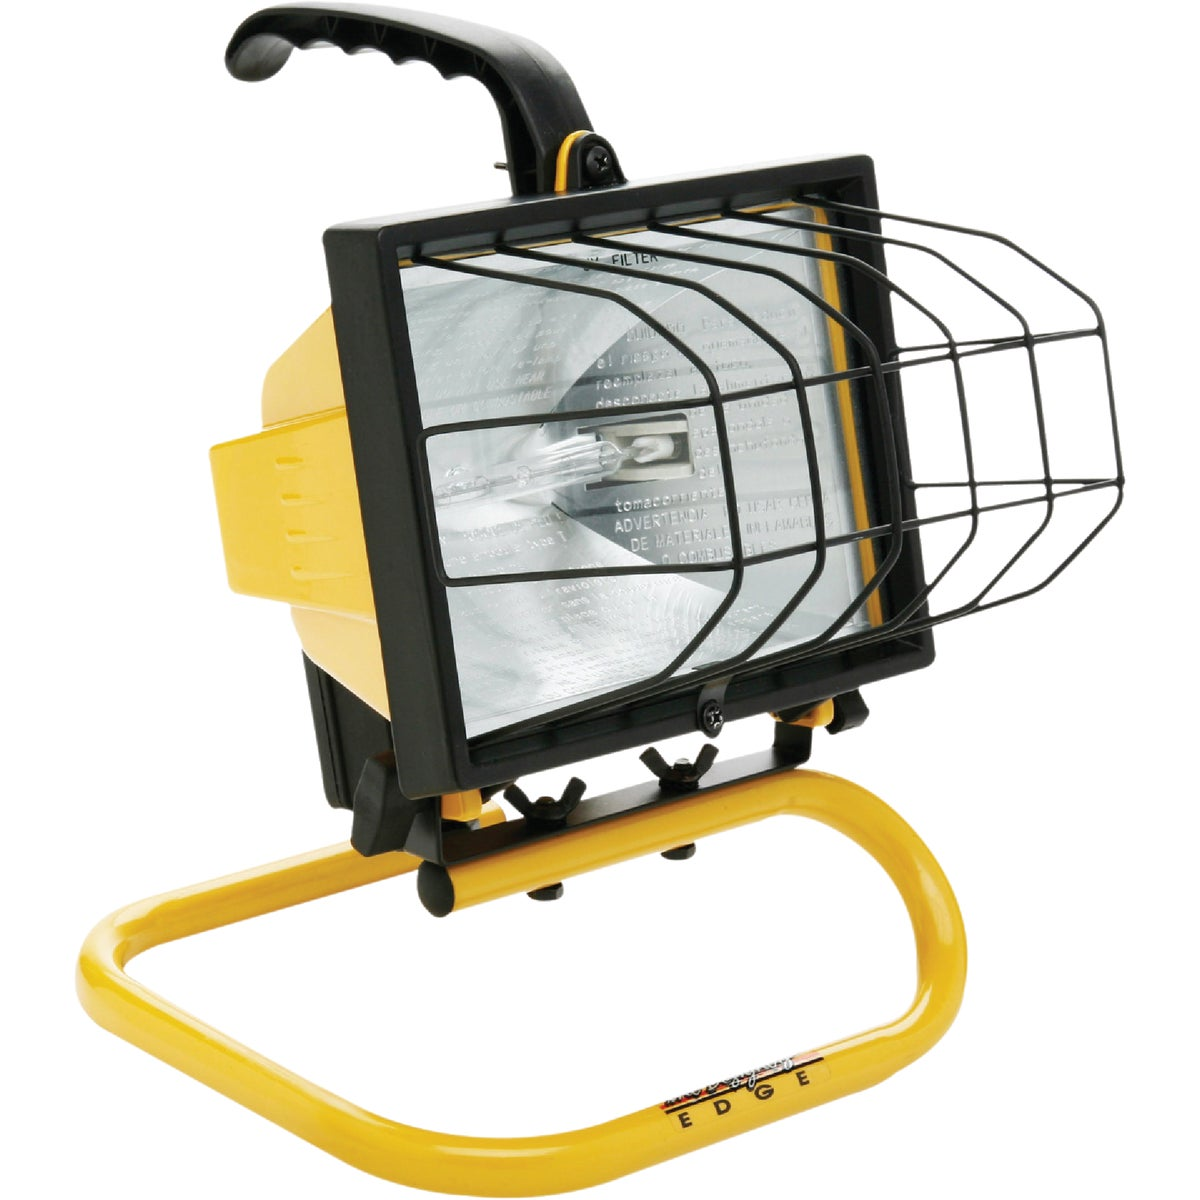 PORTABLE HALOGEN WORKLT